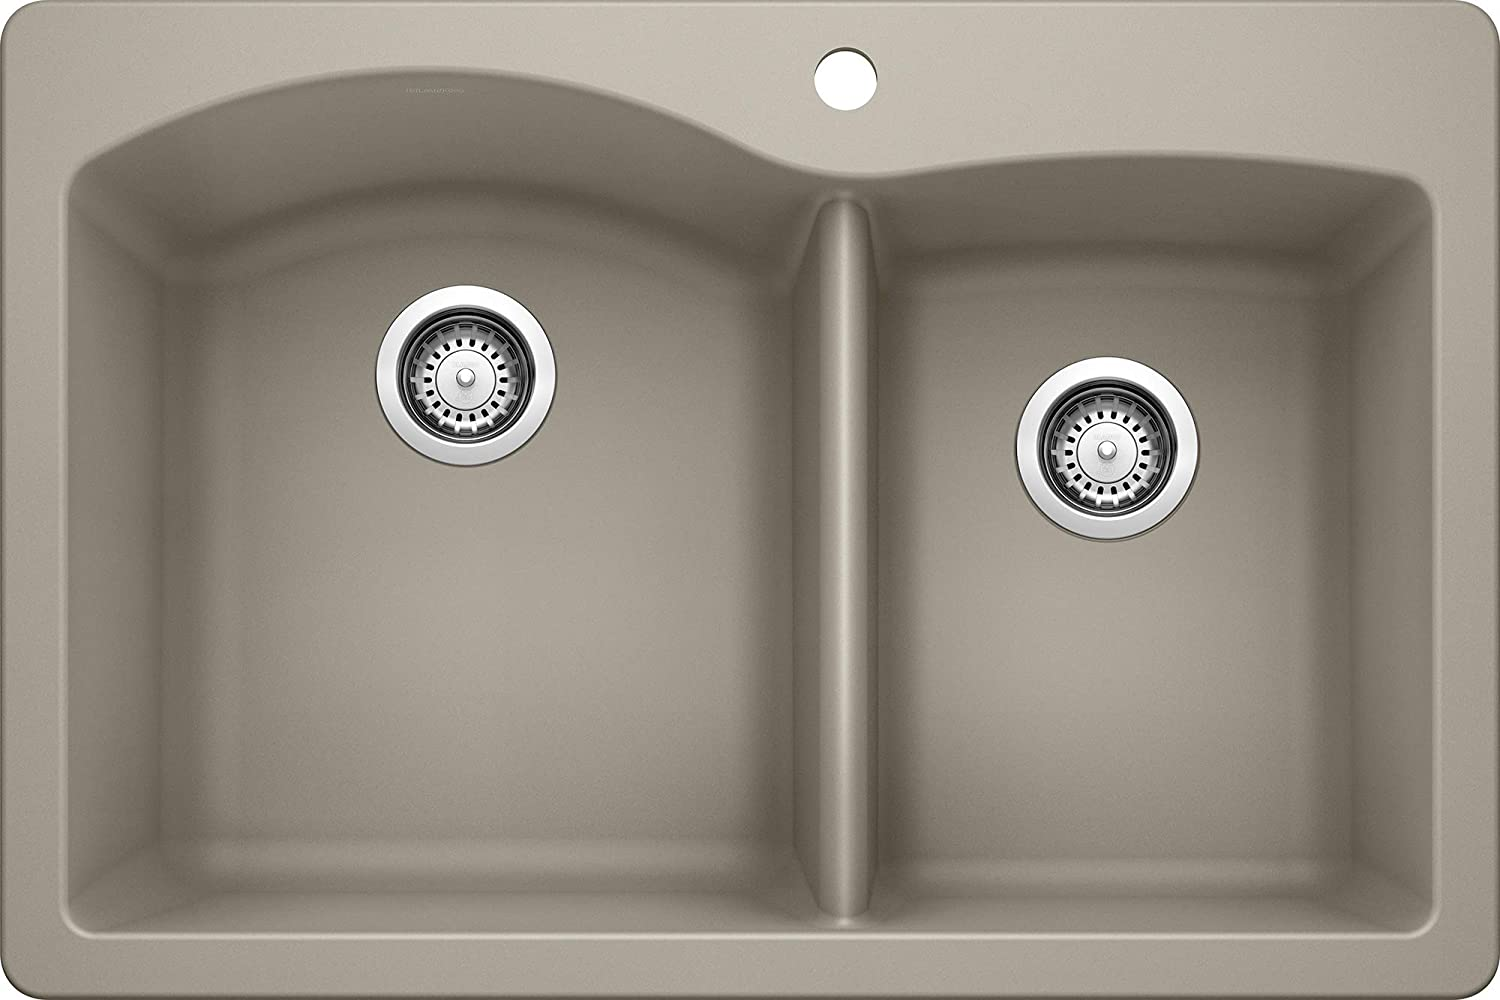 Blanco 441283 Diamond 1-3 4 Bowl Silgranit II Sink, Truffle